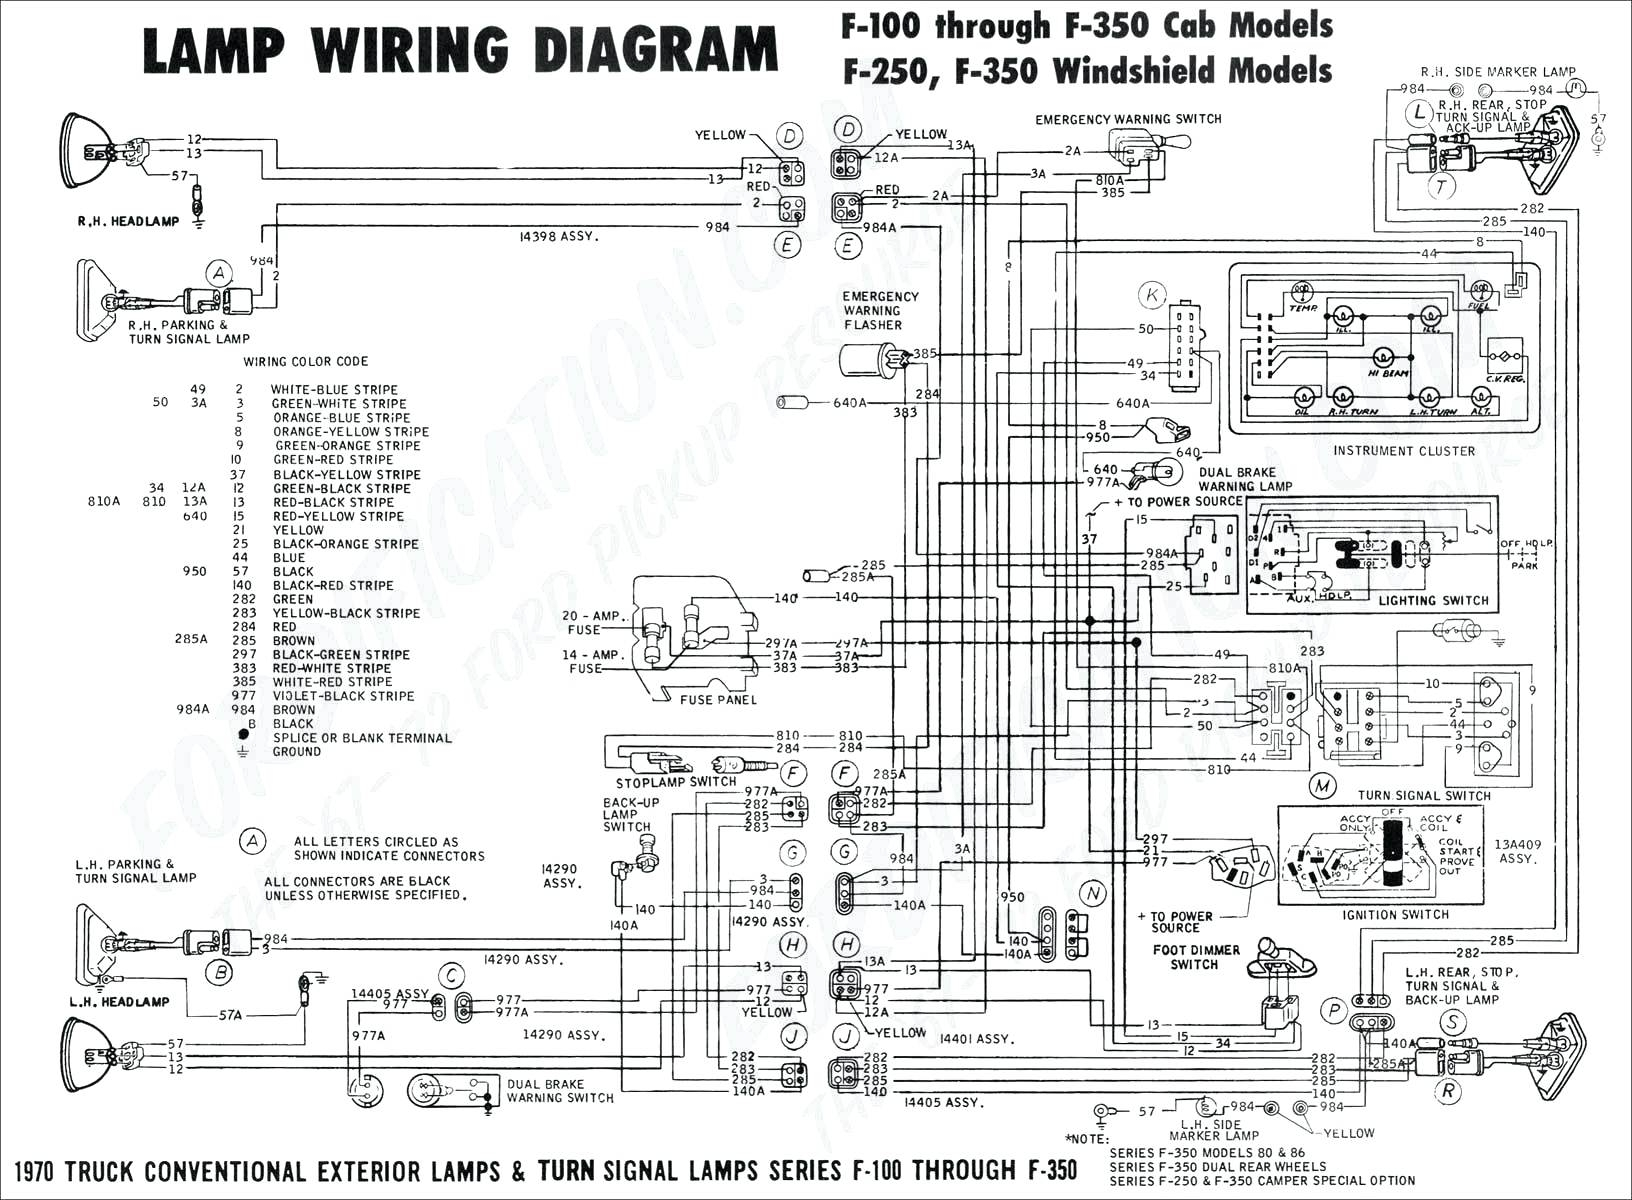 1991 Plymouth Grand Voyager Le 33 V6 Gas Wiring Diagram